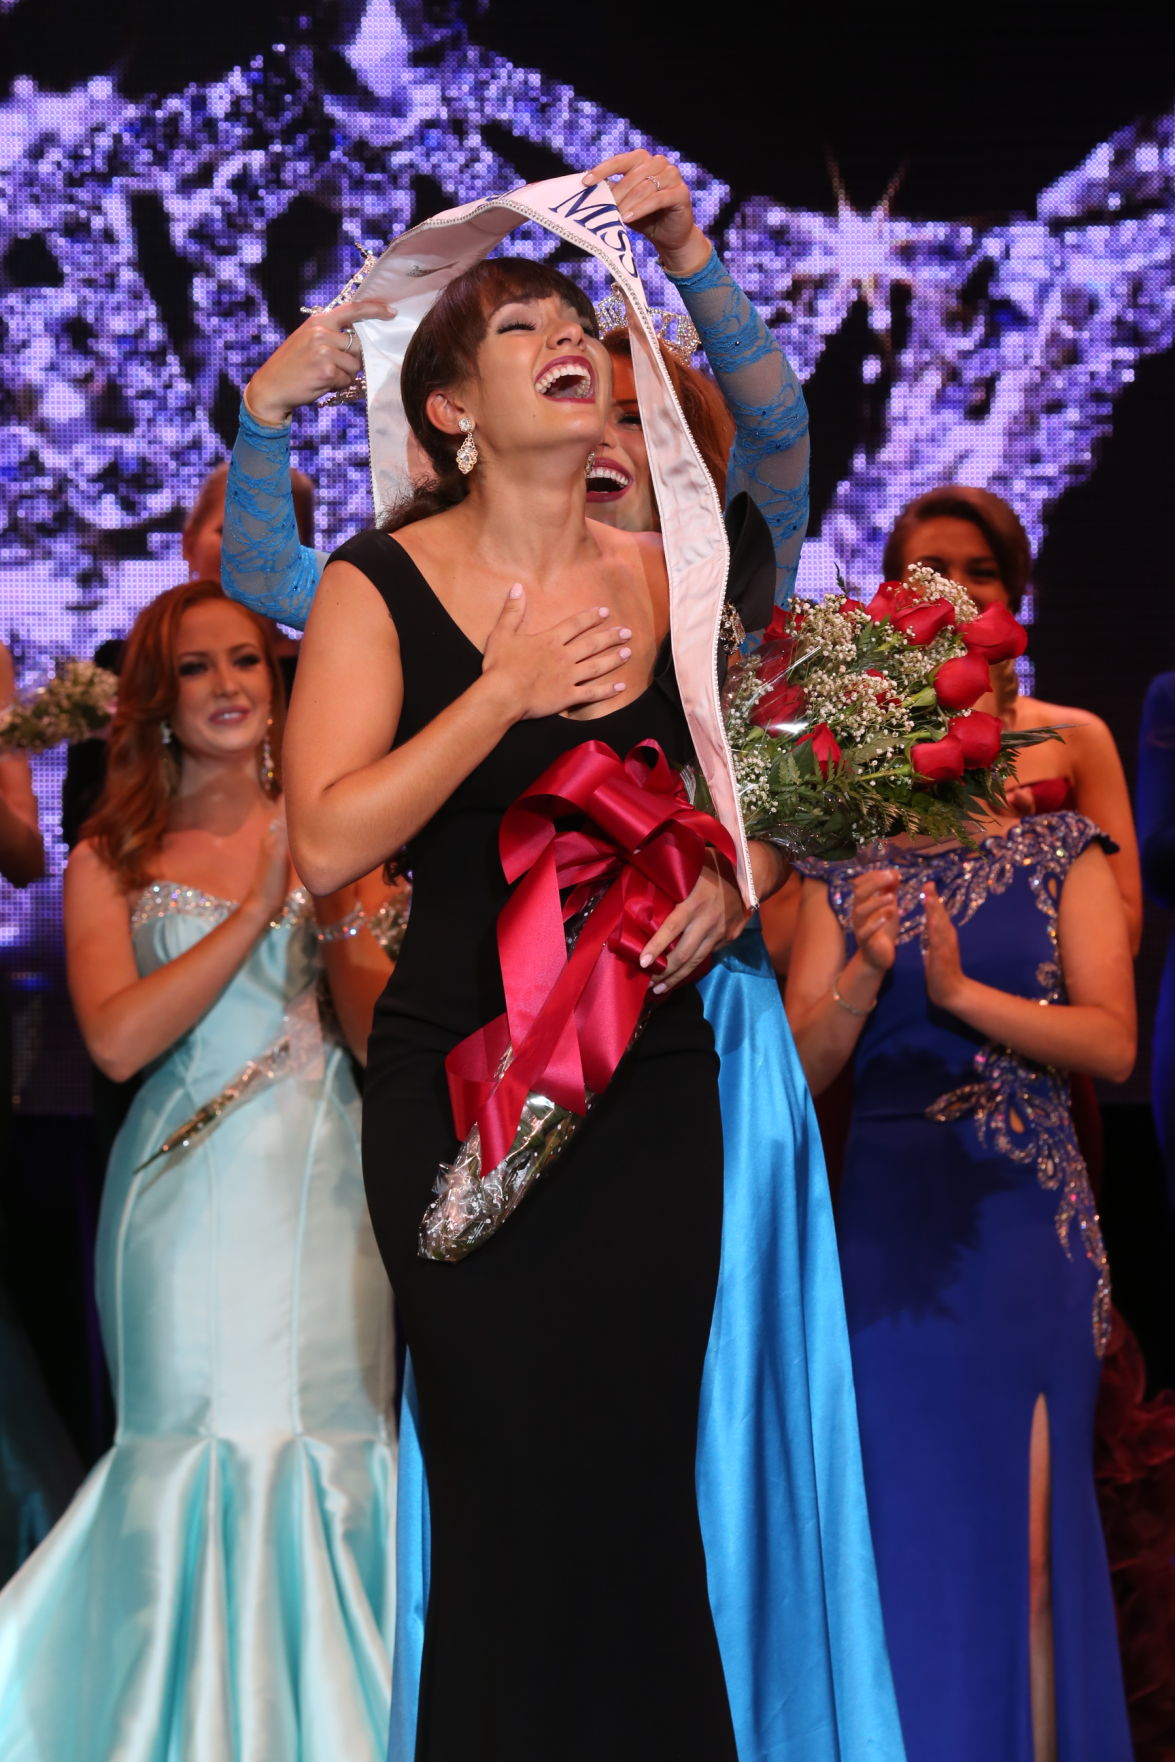 Miss New Jersey Crowning